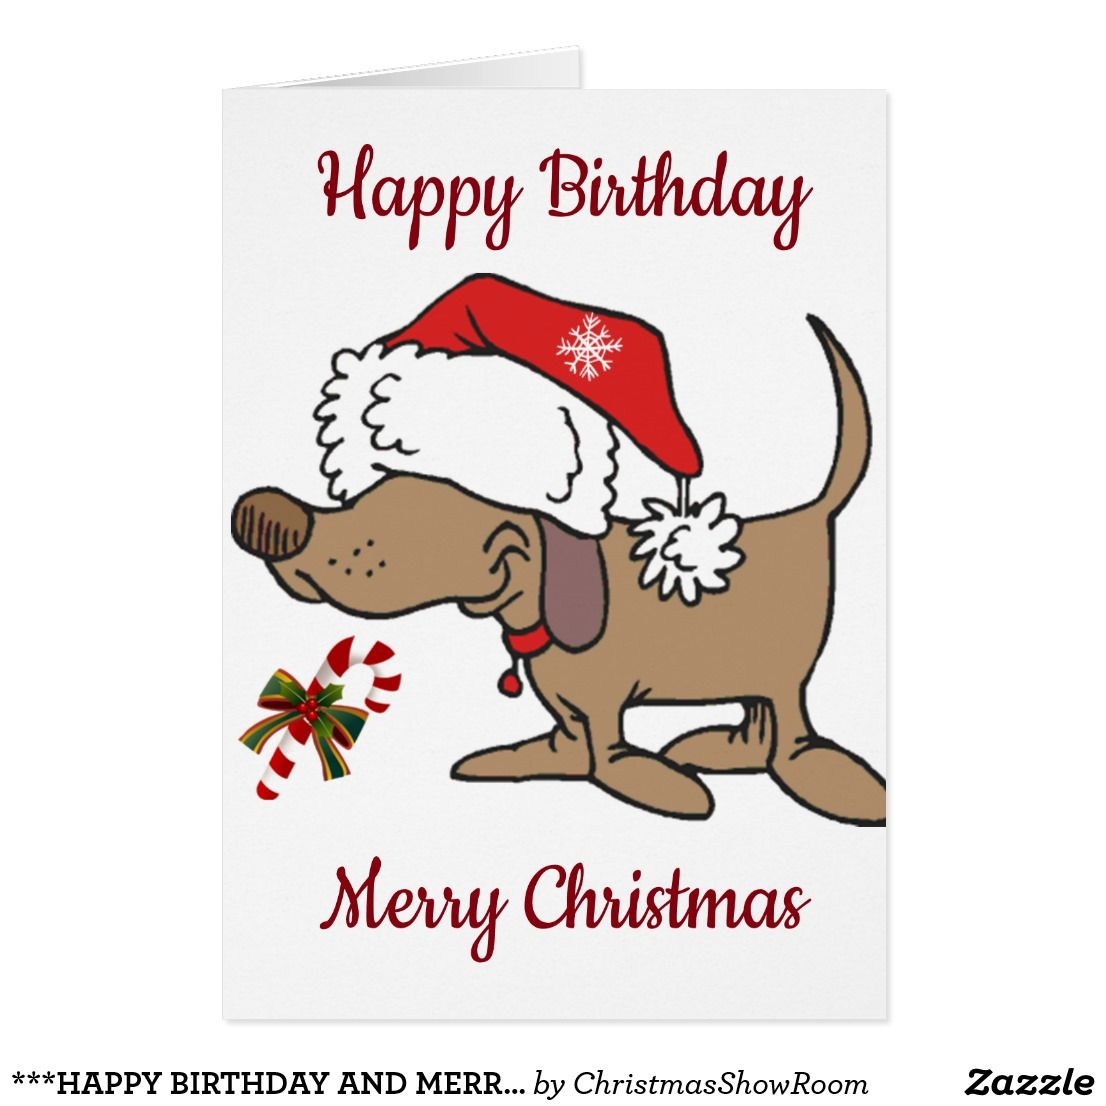 HAPPY BIRTHDAY AND MERRY CHRISTMAS*** SPECIAL U CARD | PICTURE THIS ...